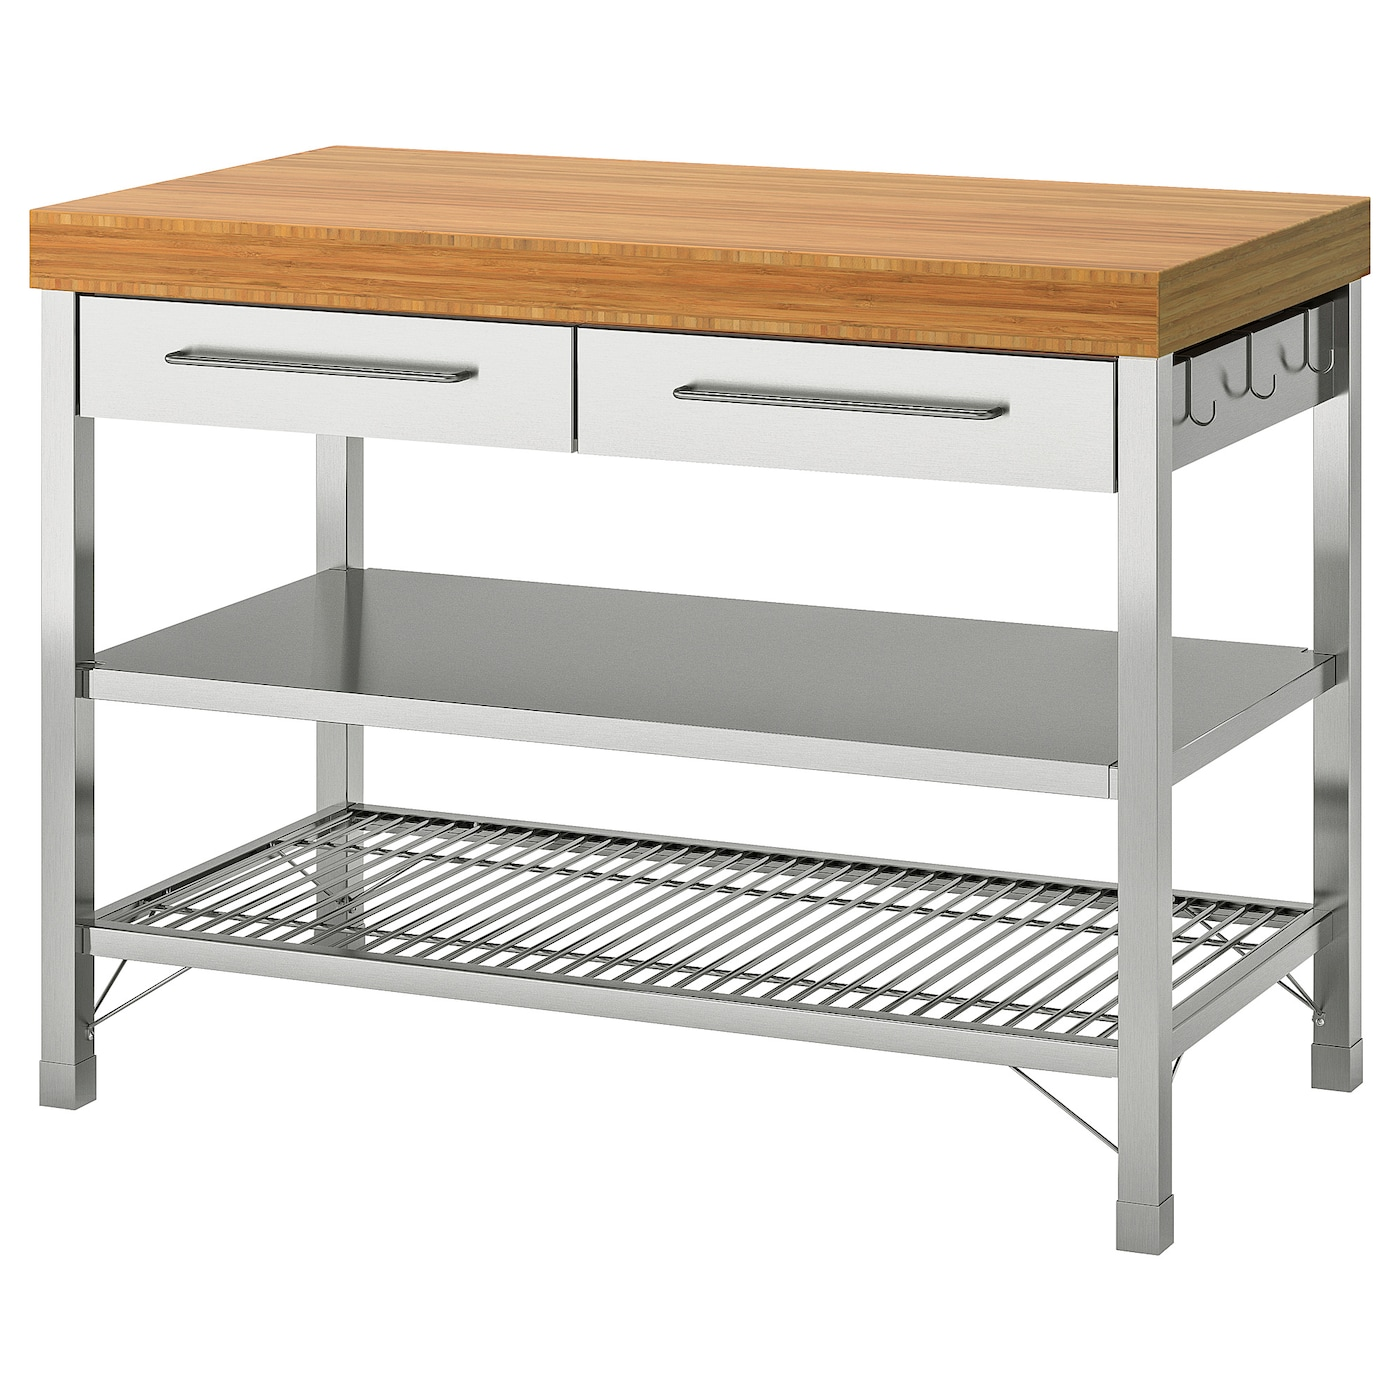 RIMFORSA Work bench - stainless steel/bamboo 9x9.9x9 cm